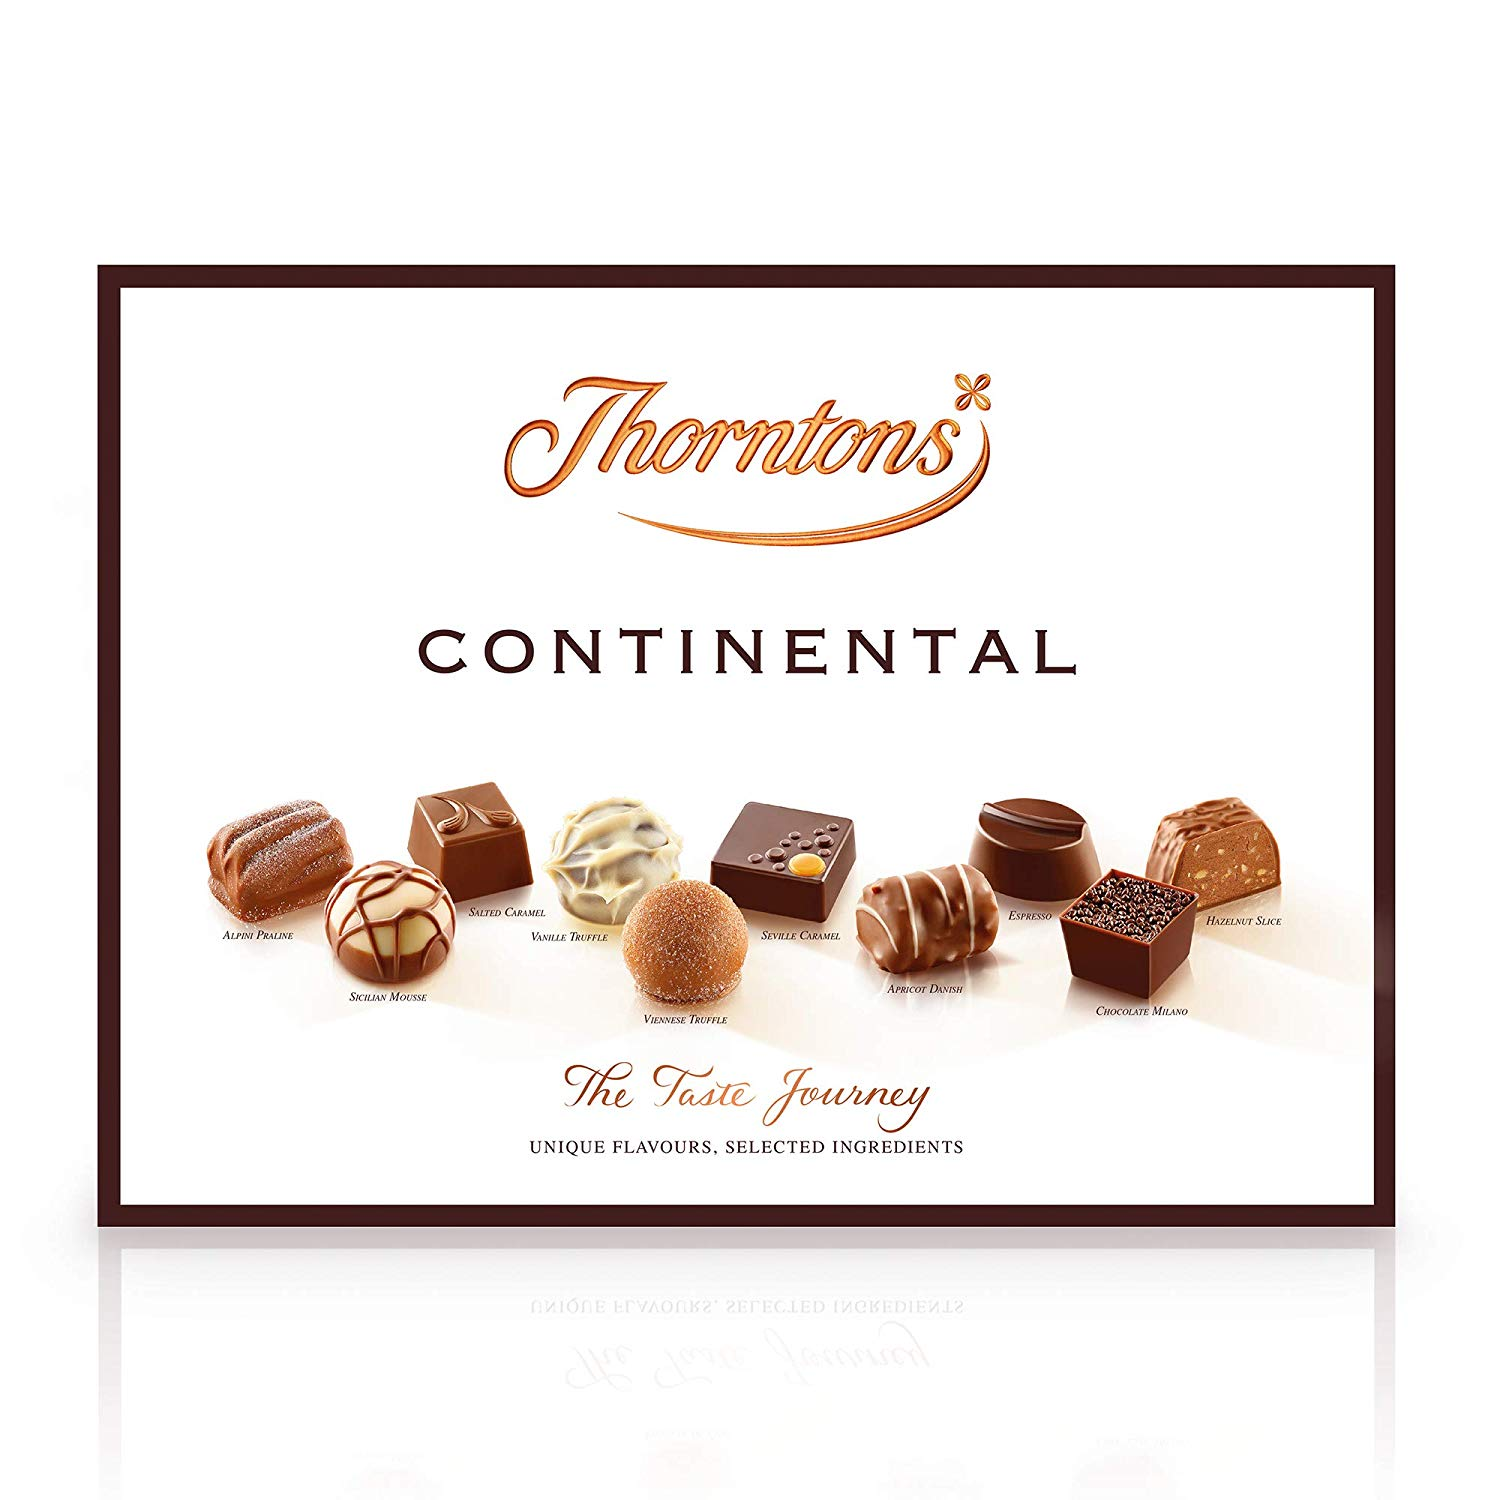 Thorntons Continental Chocolate Gift Set, Assorted White, Milk and Dark Chocolates, 25 Pieces